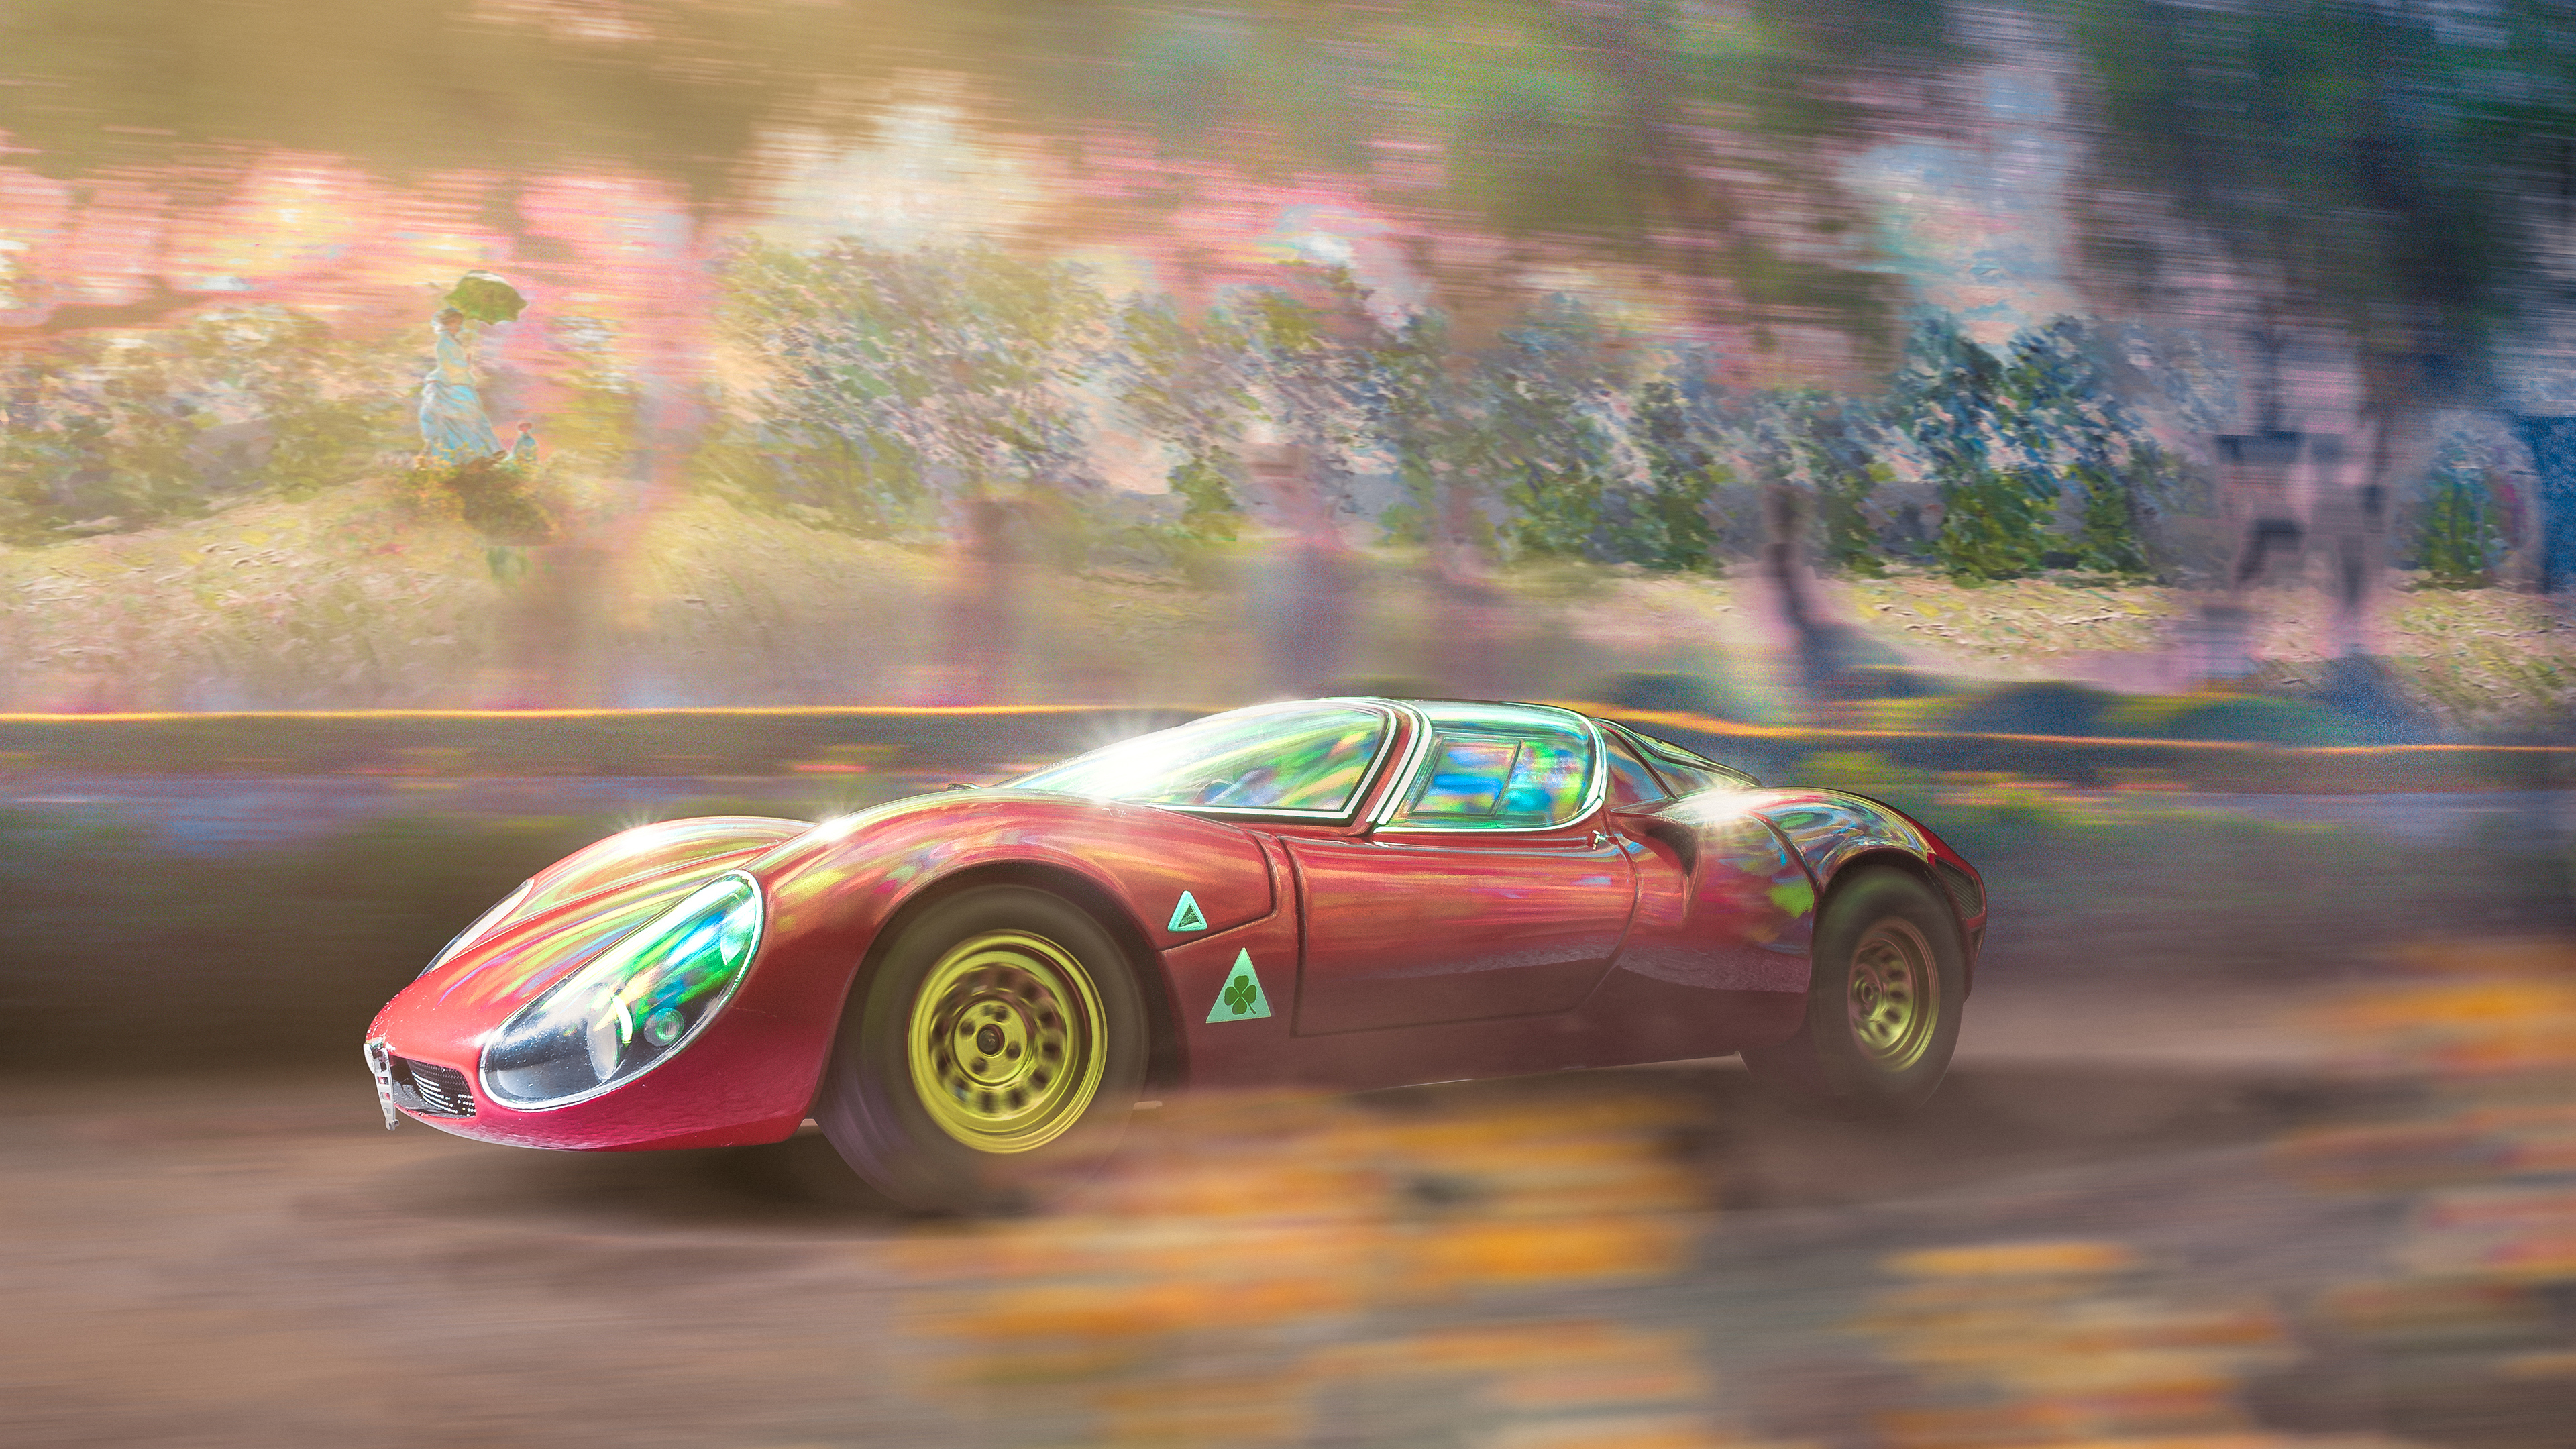 alfa romeo 33 stradale 4k 1555206902 - Alfa Romeo 33 Stradale 4k - racing wallpapers, hd-wallpapers, cars wallpapers, behance wallpapers, alfa romeo wallpapers, 4k-wallpapers